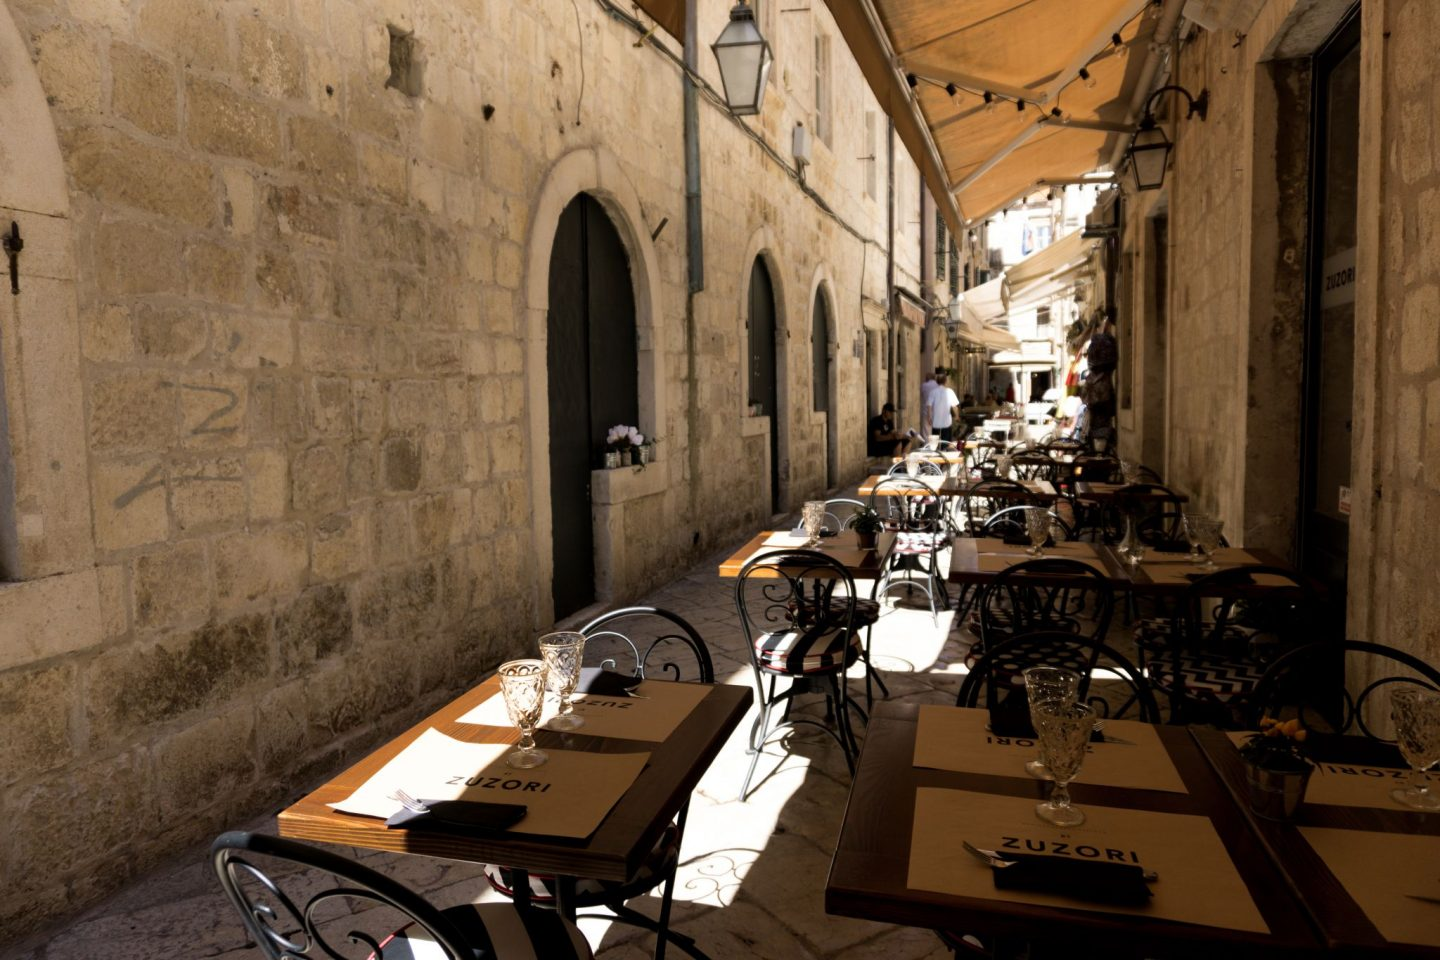 Travel Croatia Game of Thrones walking tour Dubrovnik City Guide Nadia El Ferdaoussi the daily s'elf Dubrovnik Old Town